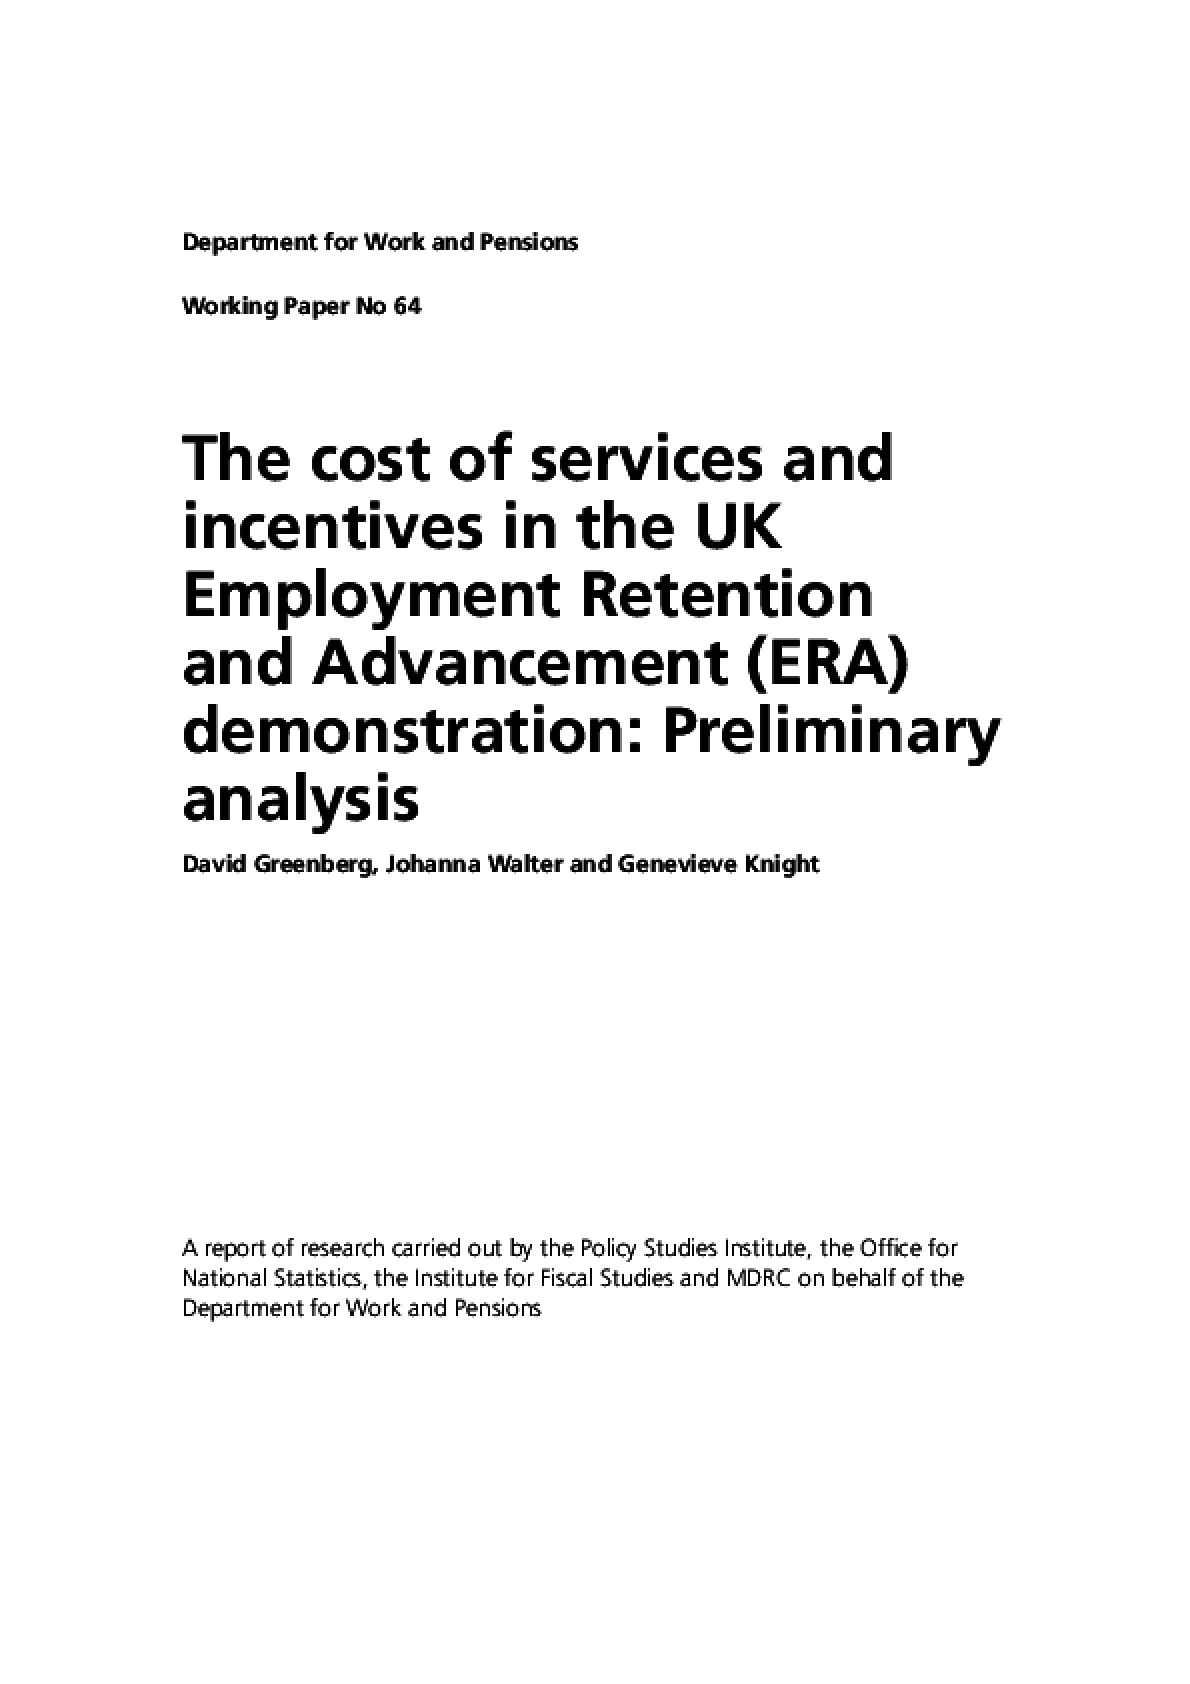 Cost of Services and Incentives in the UK Employment Retention and Advancement (ERA) Demonstration: Preliminary Analysis